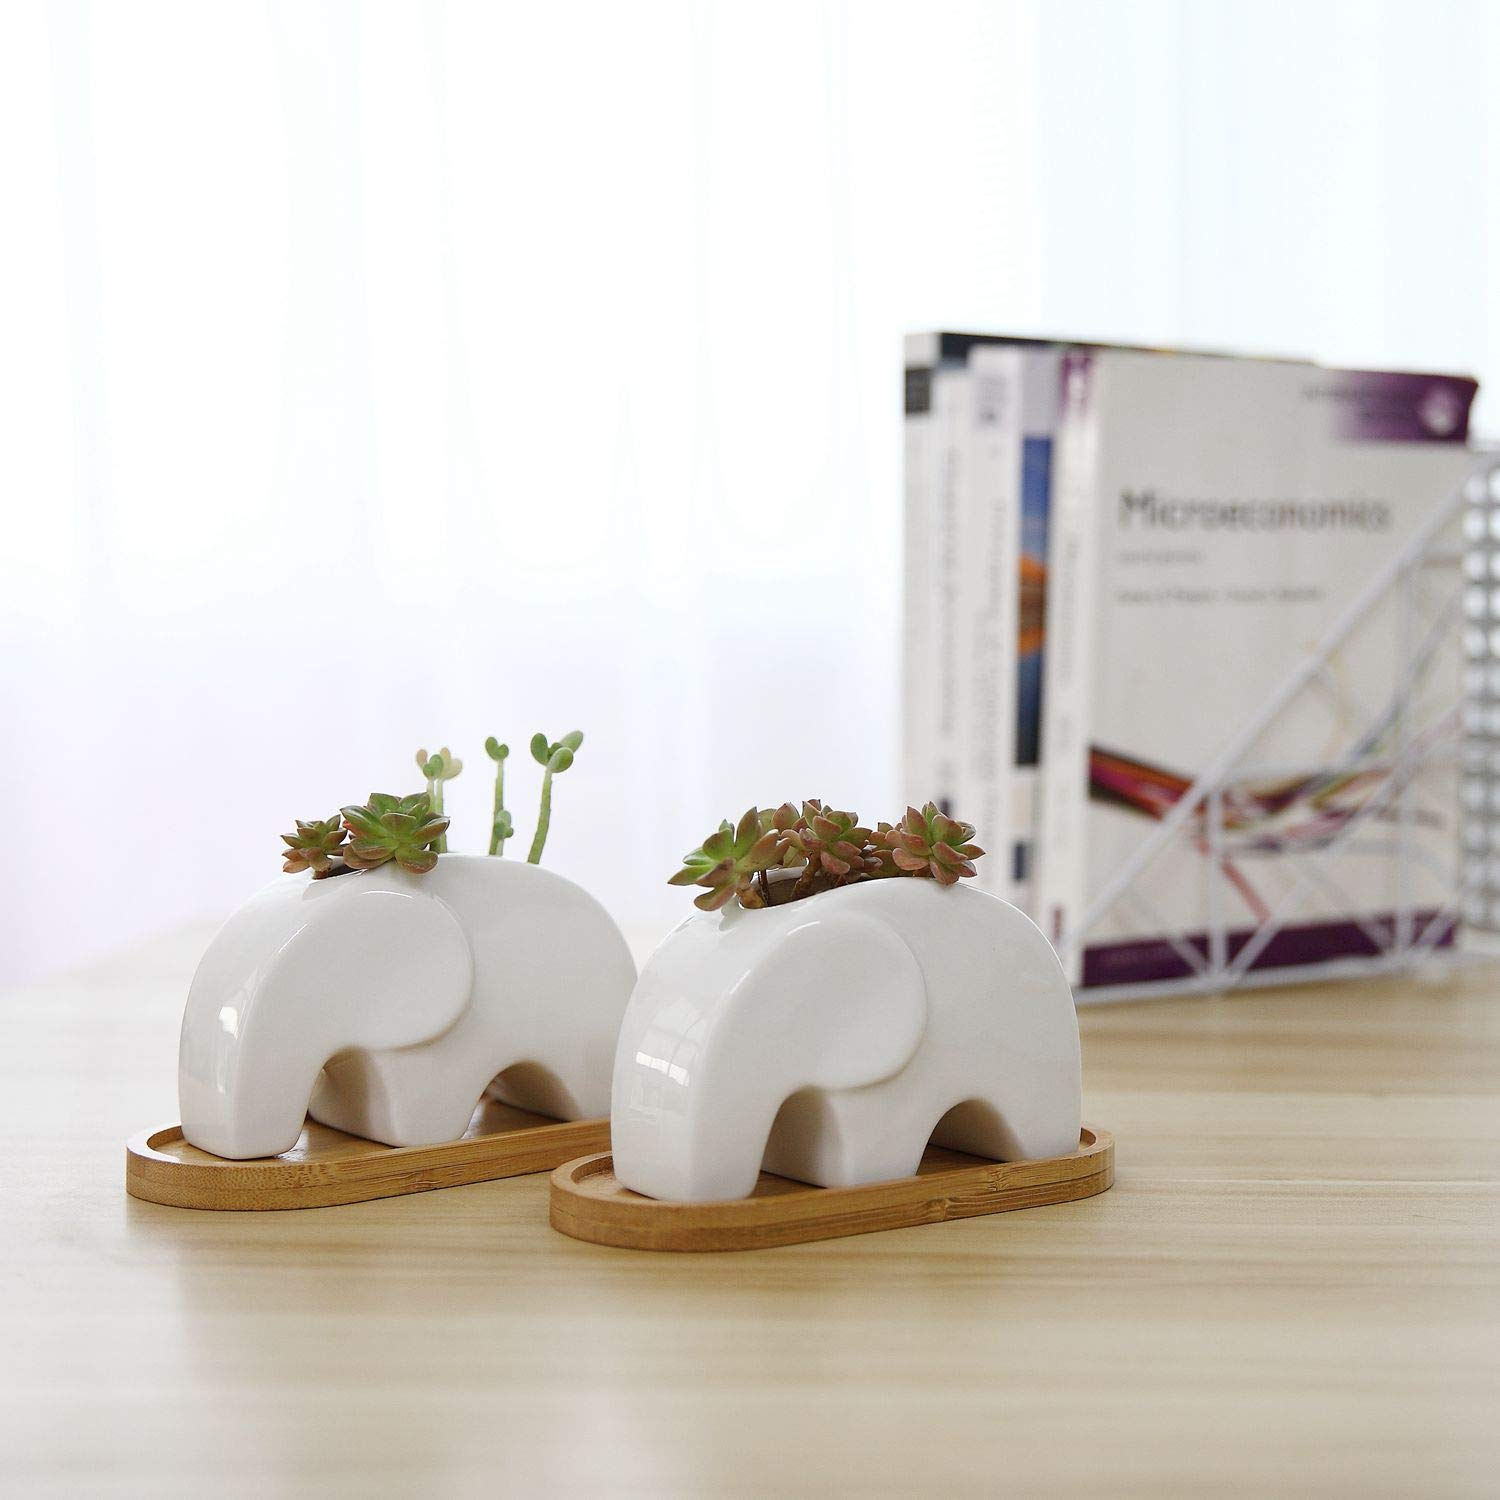 T4U Succulent Plant Pot Cactus Ceramic Planter with Bamboo Tray Pack of 2-4.8'' Elephant, Small Container White Animal Window Box Decorative Ornament Office Desktop Wedding Birthday by T4U (Image #3)